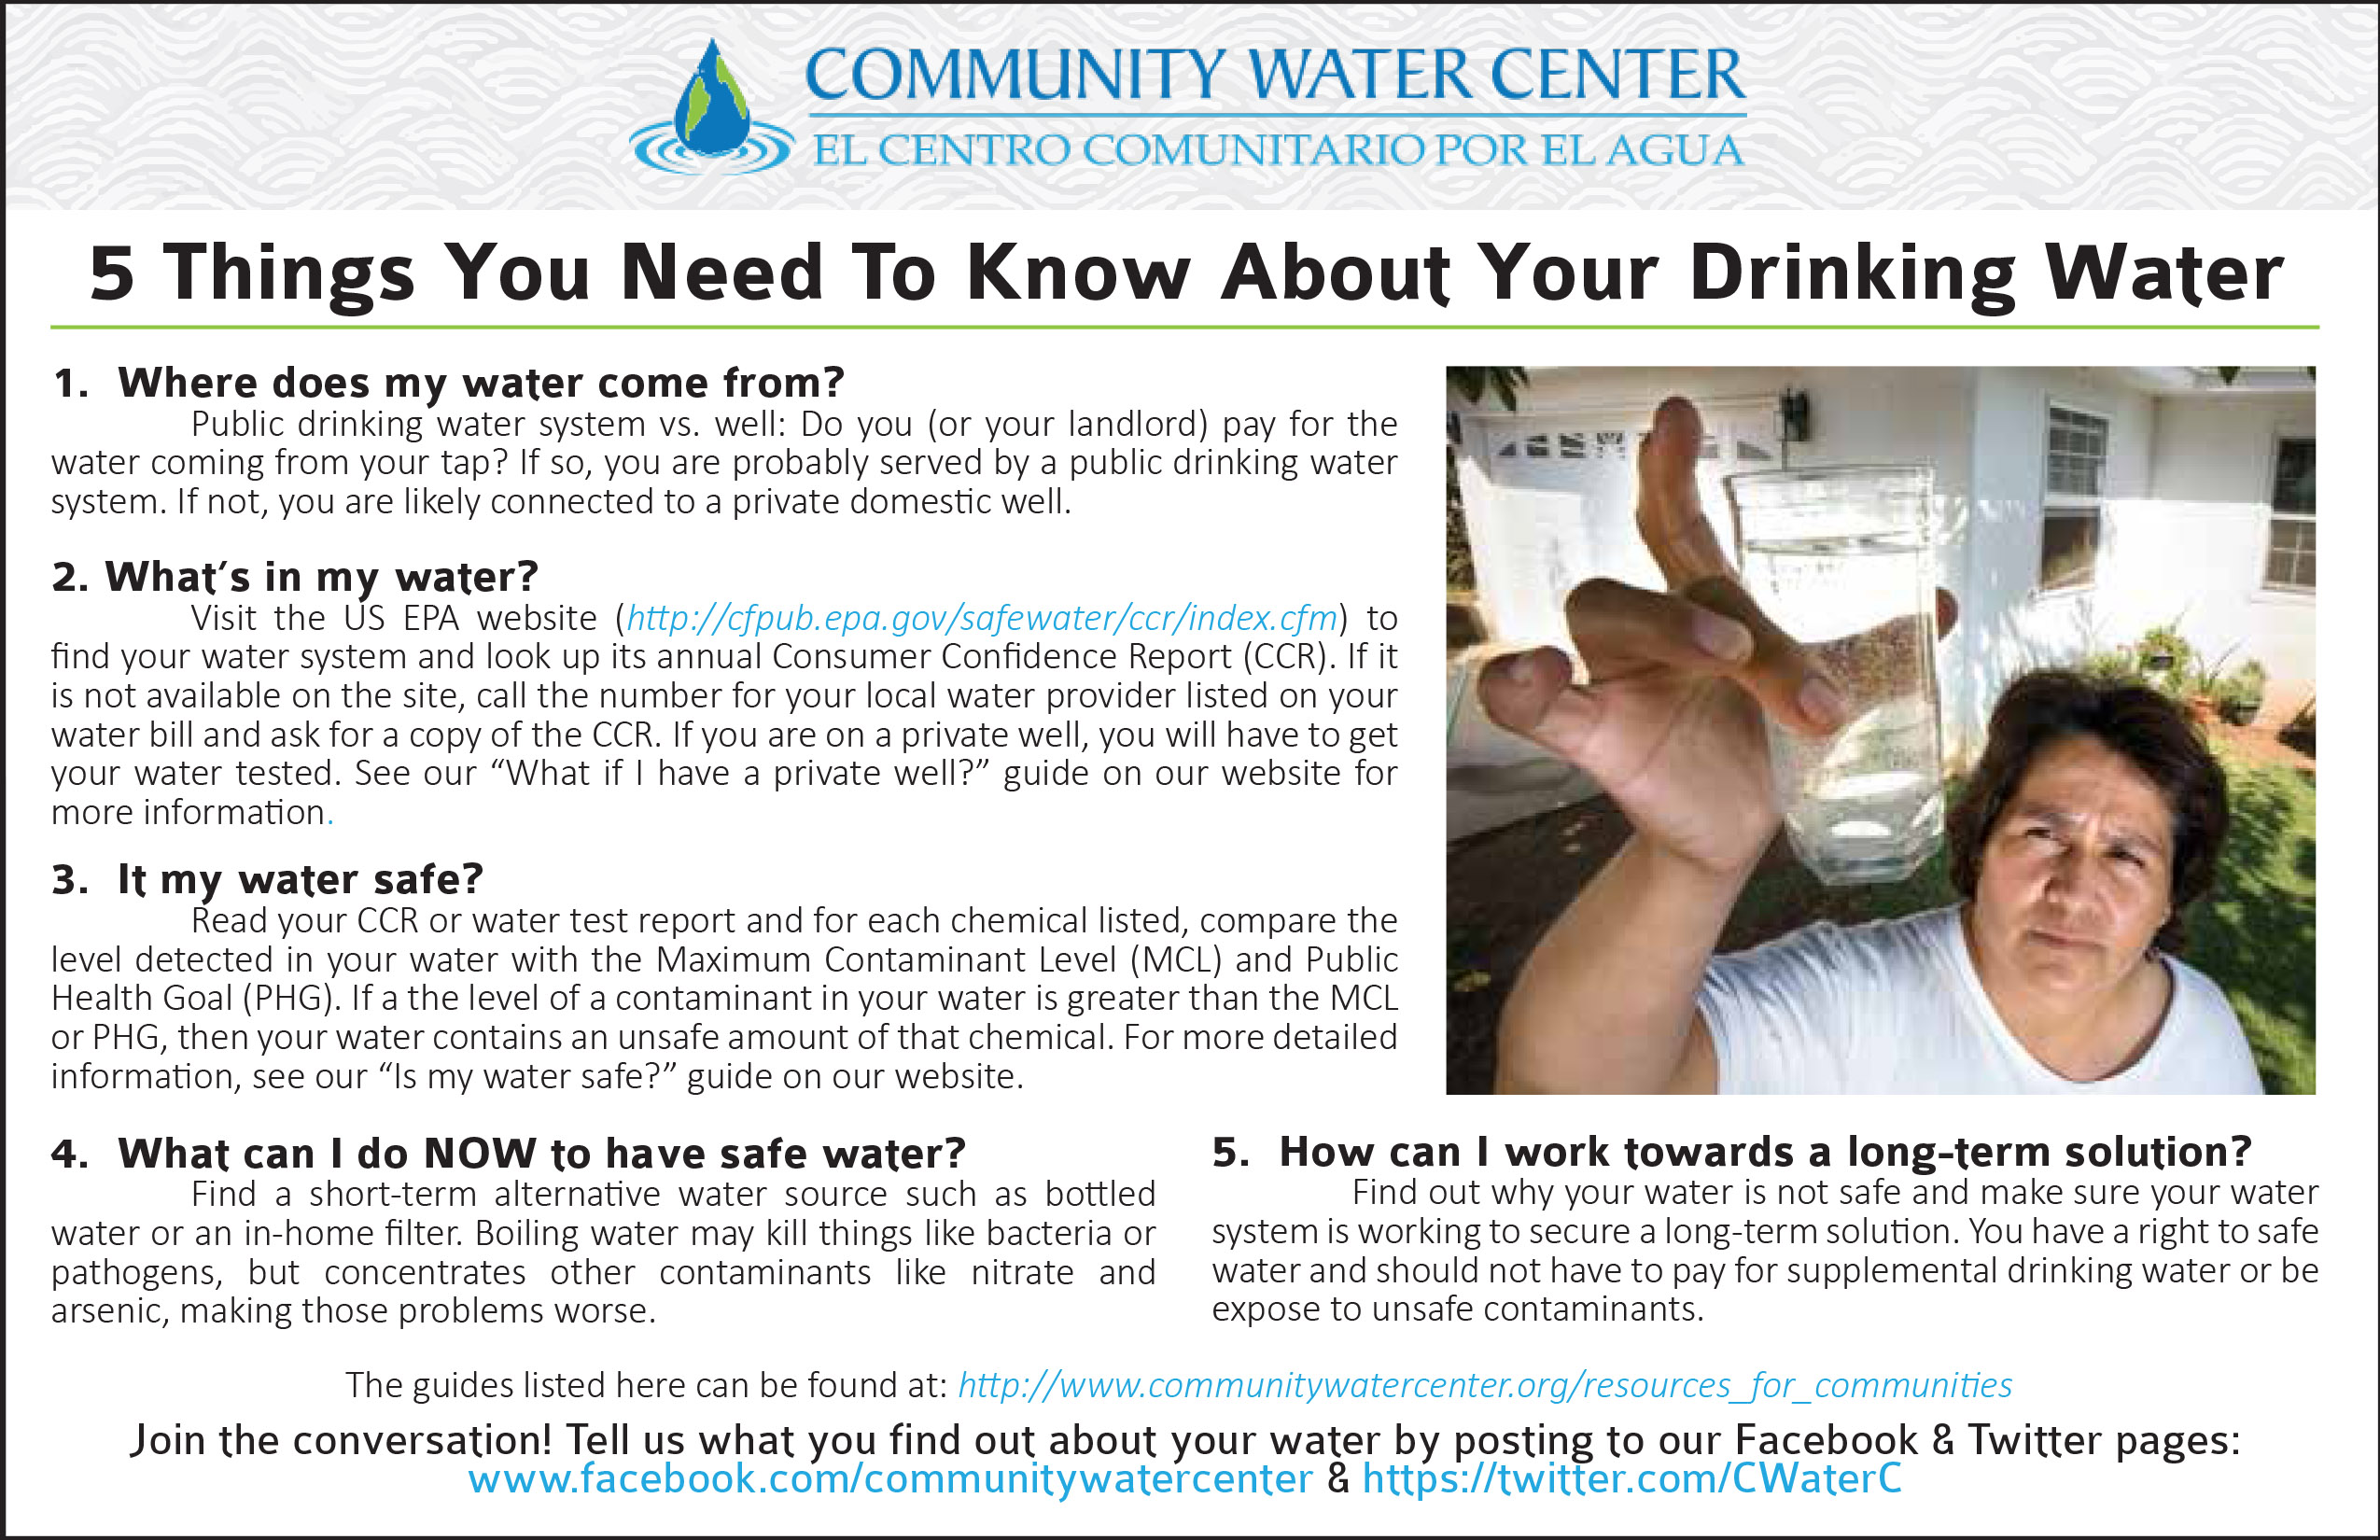 5_Things_to_know_about_your_drinking_water.jpg